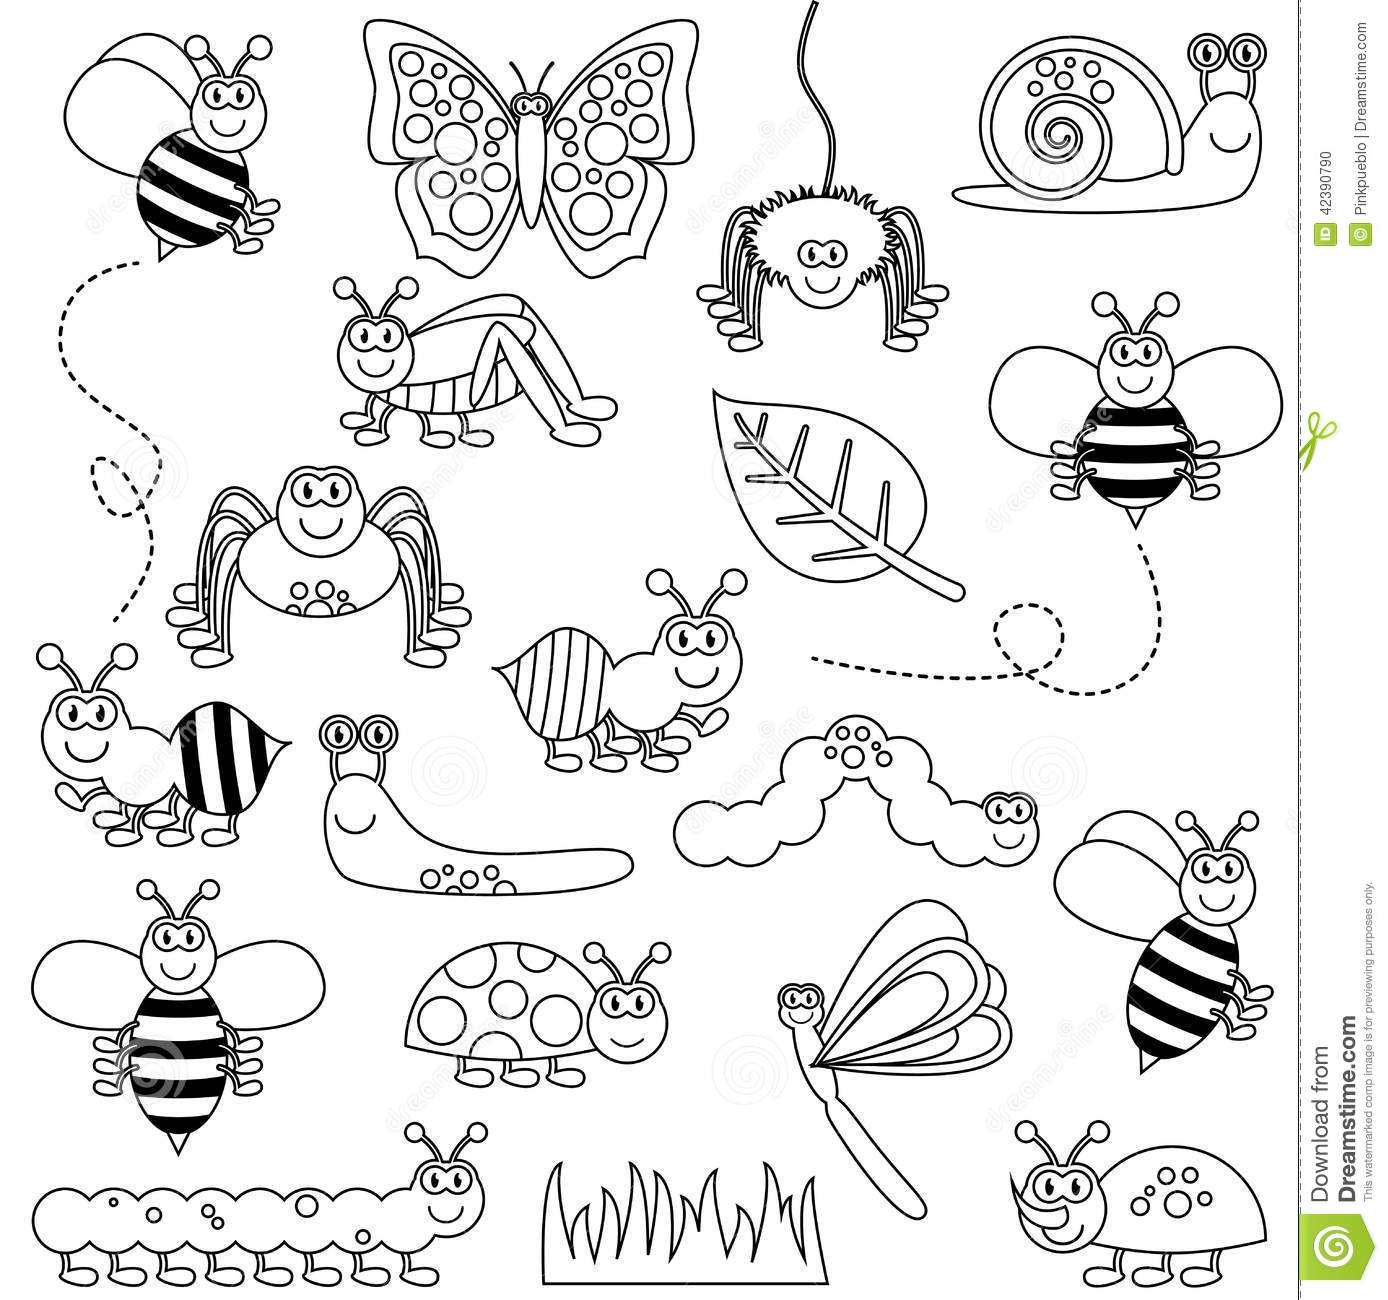 Cute insect drawing - photo#11